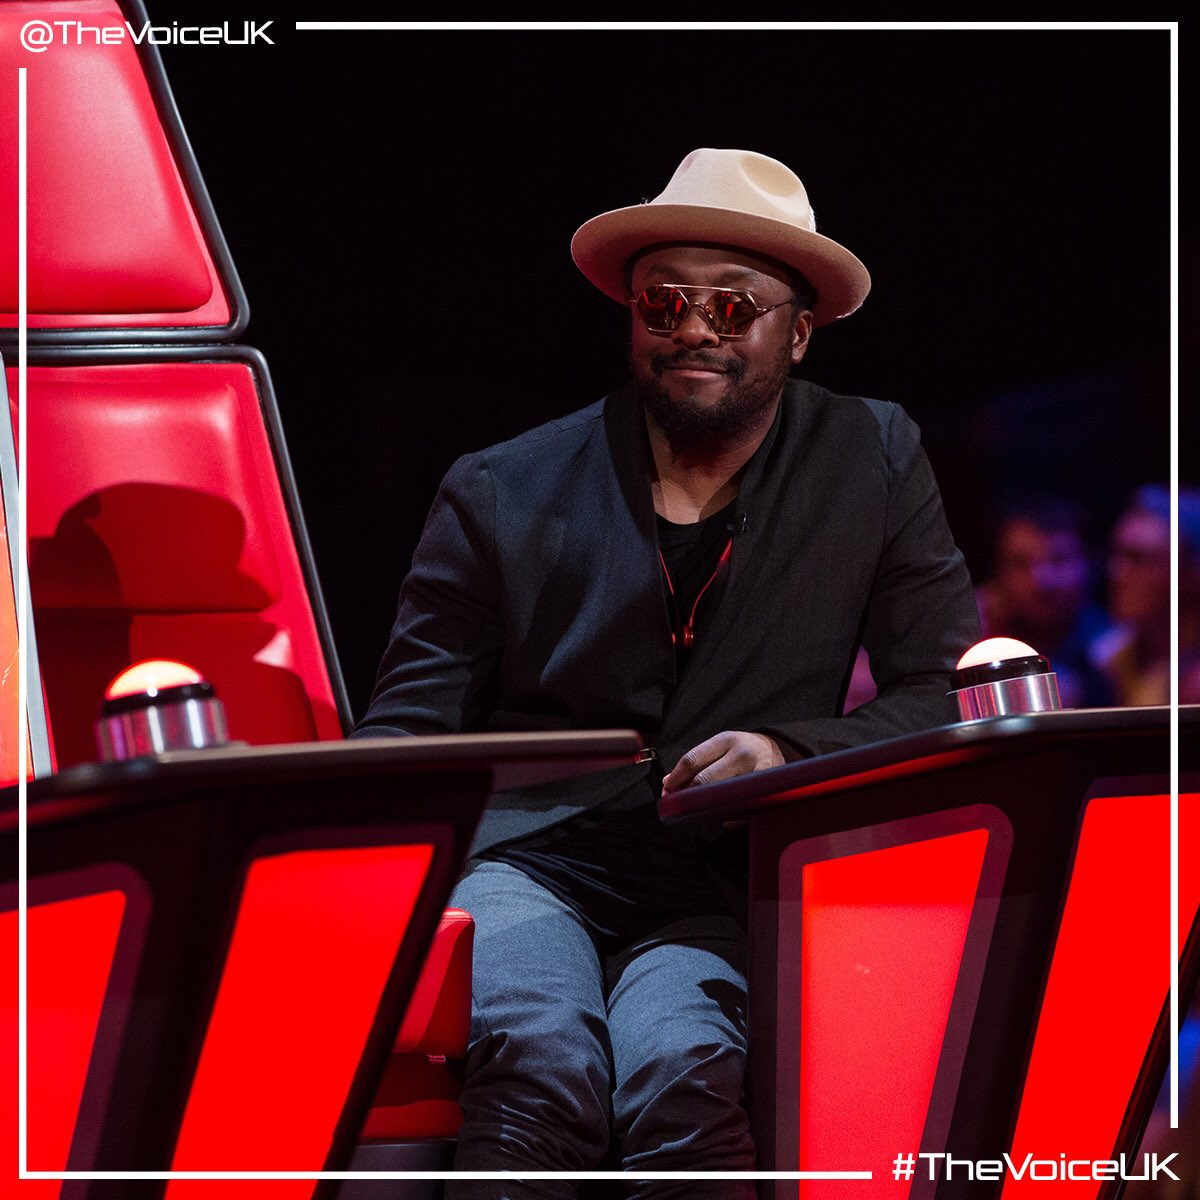 I hope your watching #TheVoiceUk right now!!! https://t.co/OVh87fdKBF